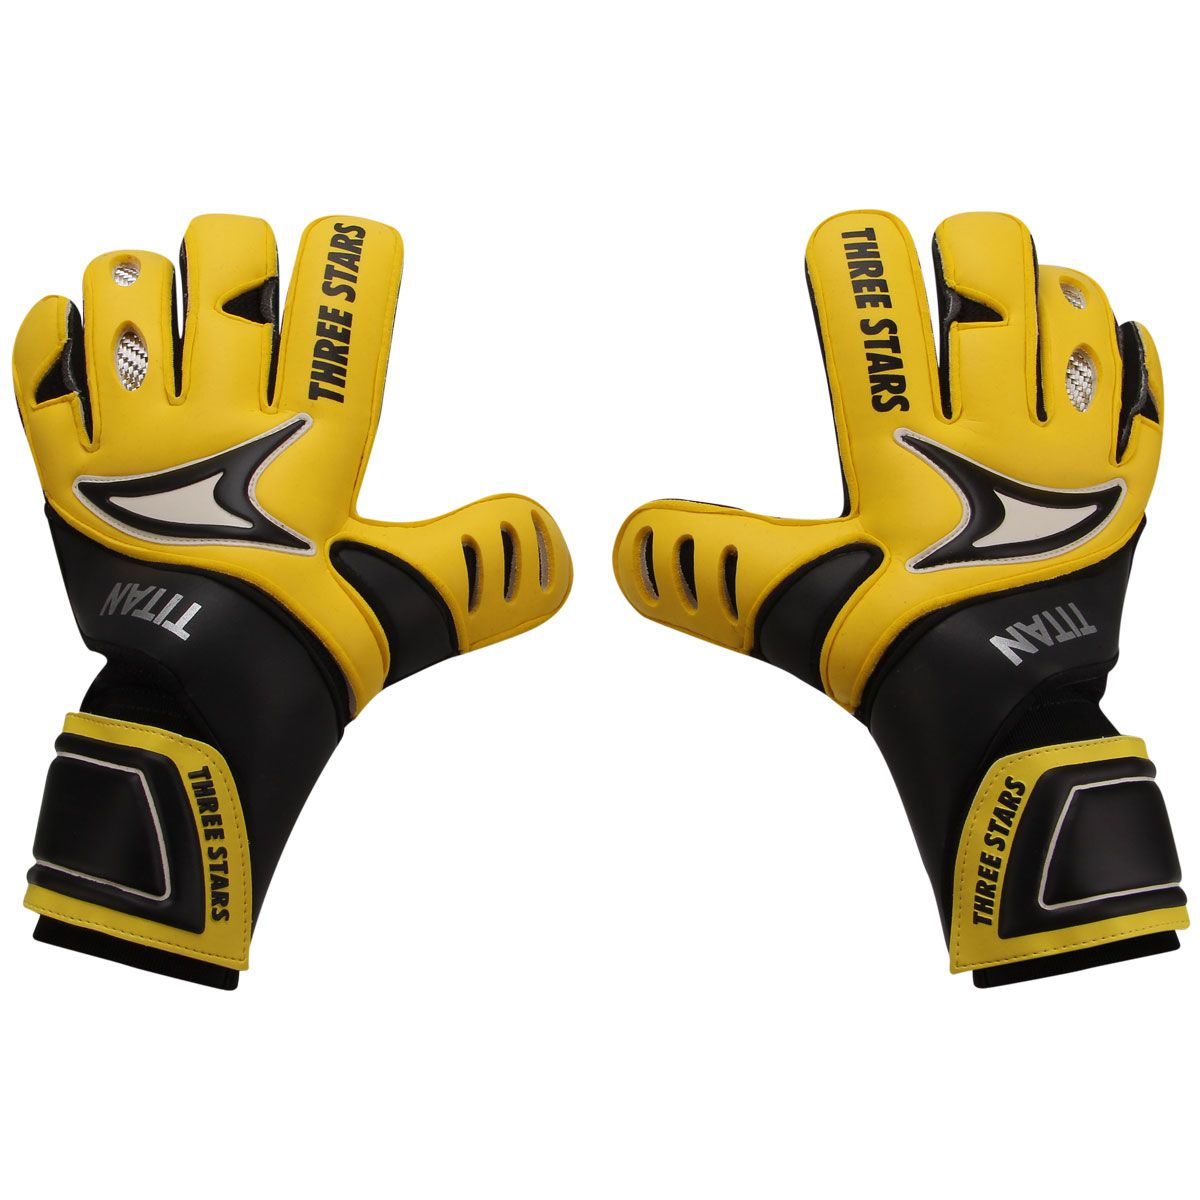 Luva Goleiro Three Stars Titan - Adulto